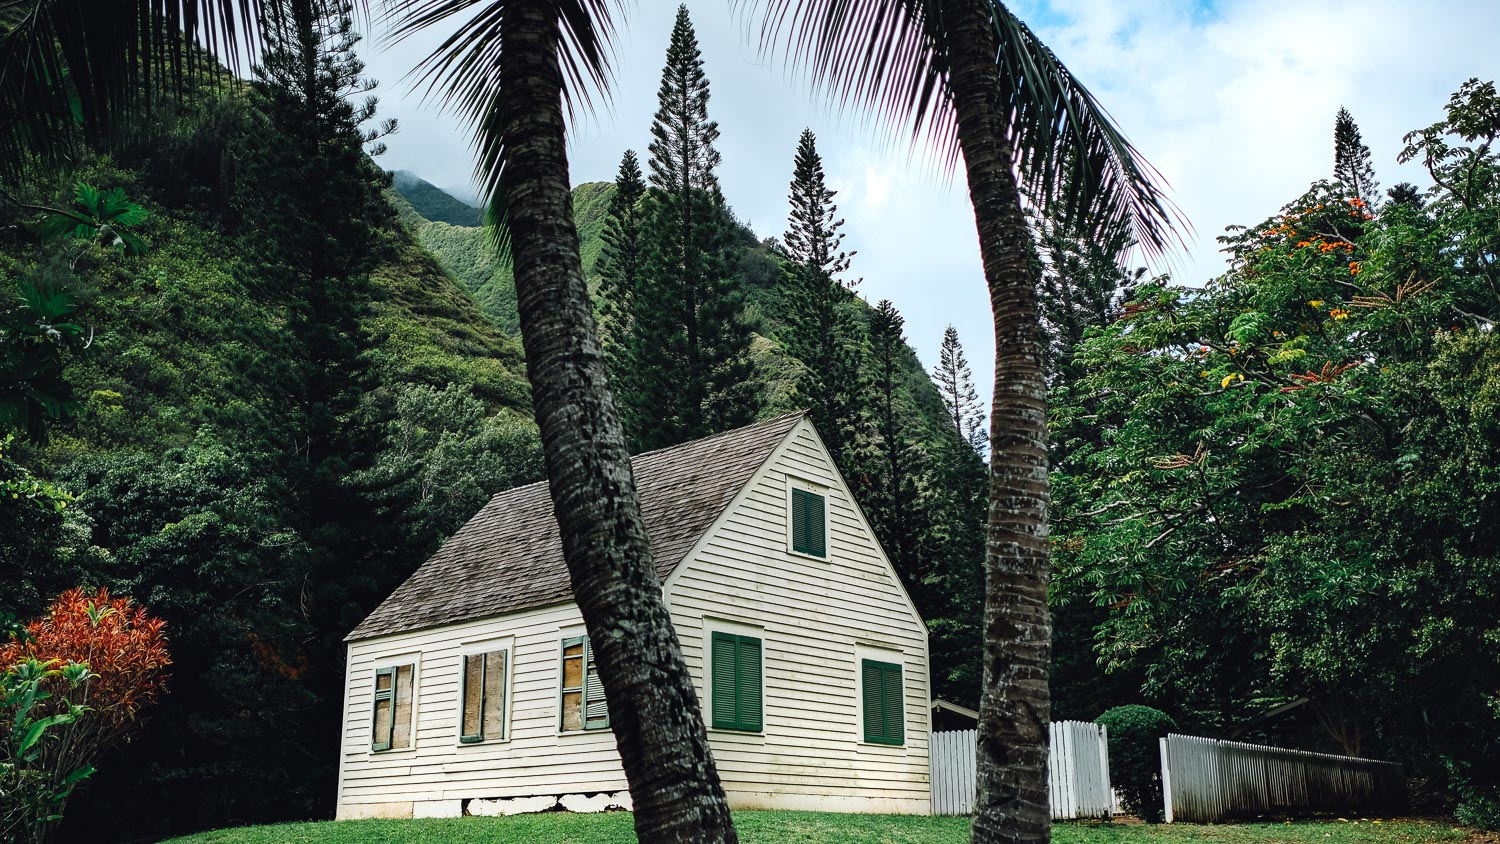 A White House near Iao Valley